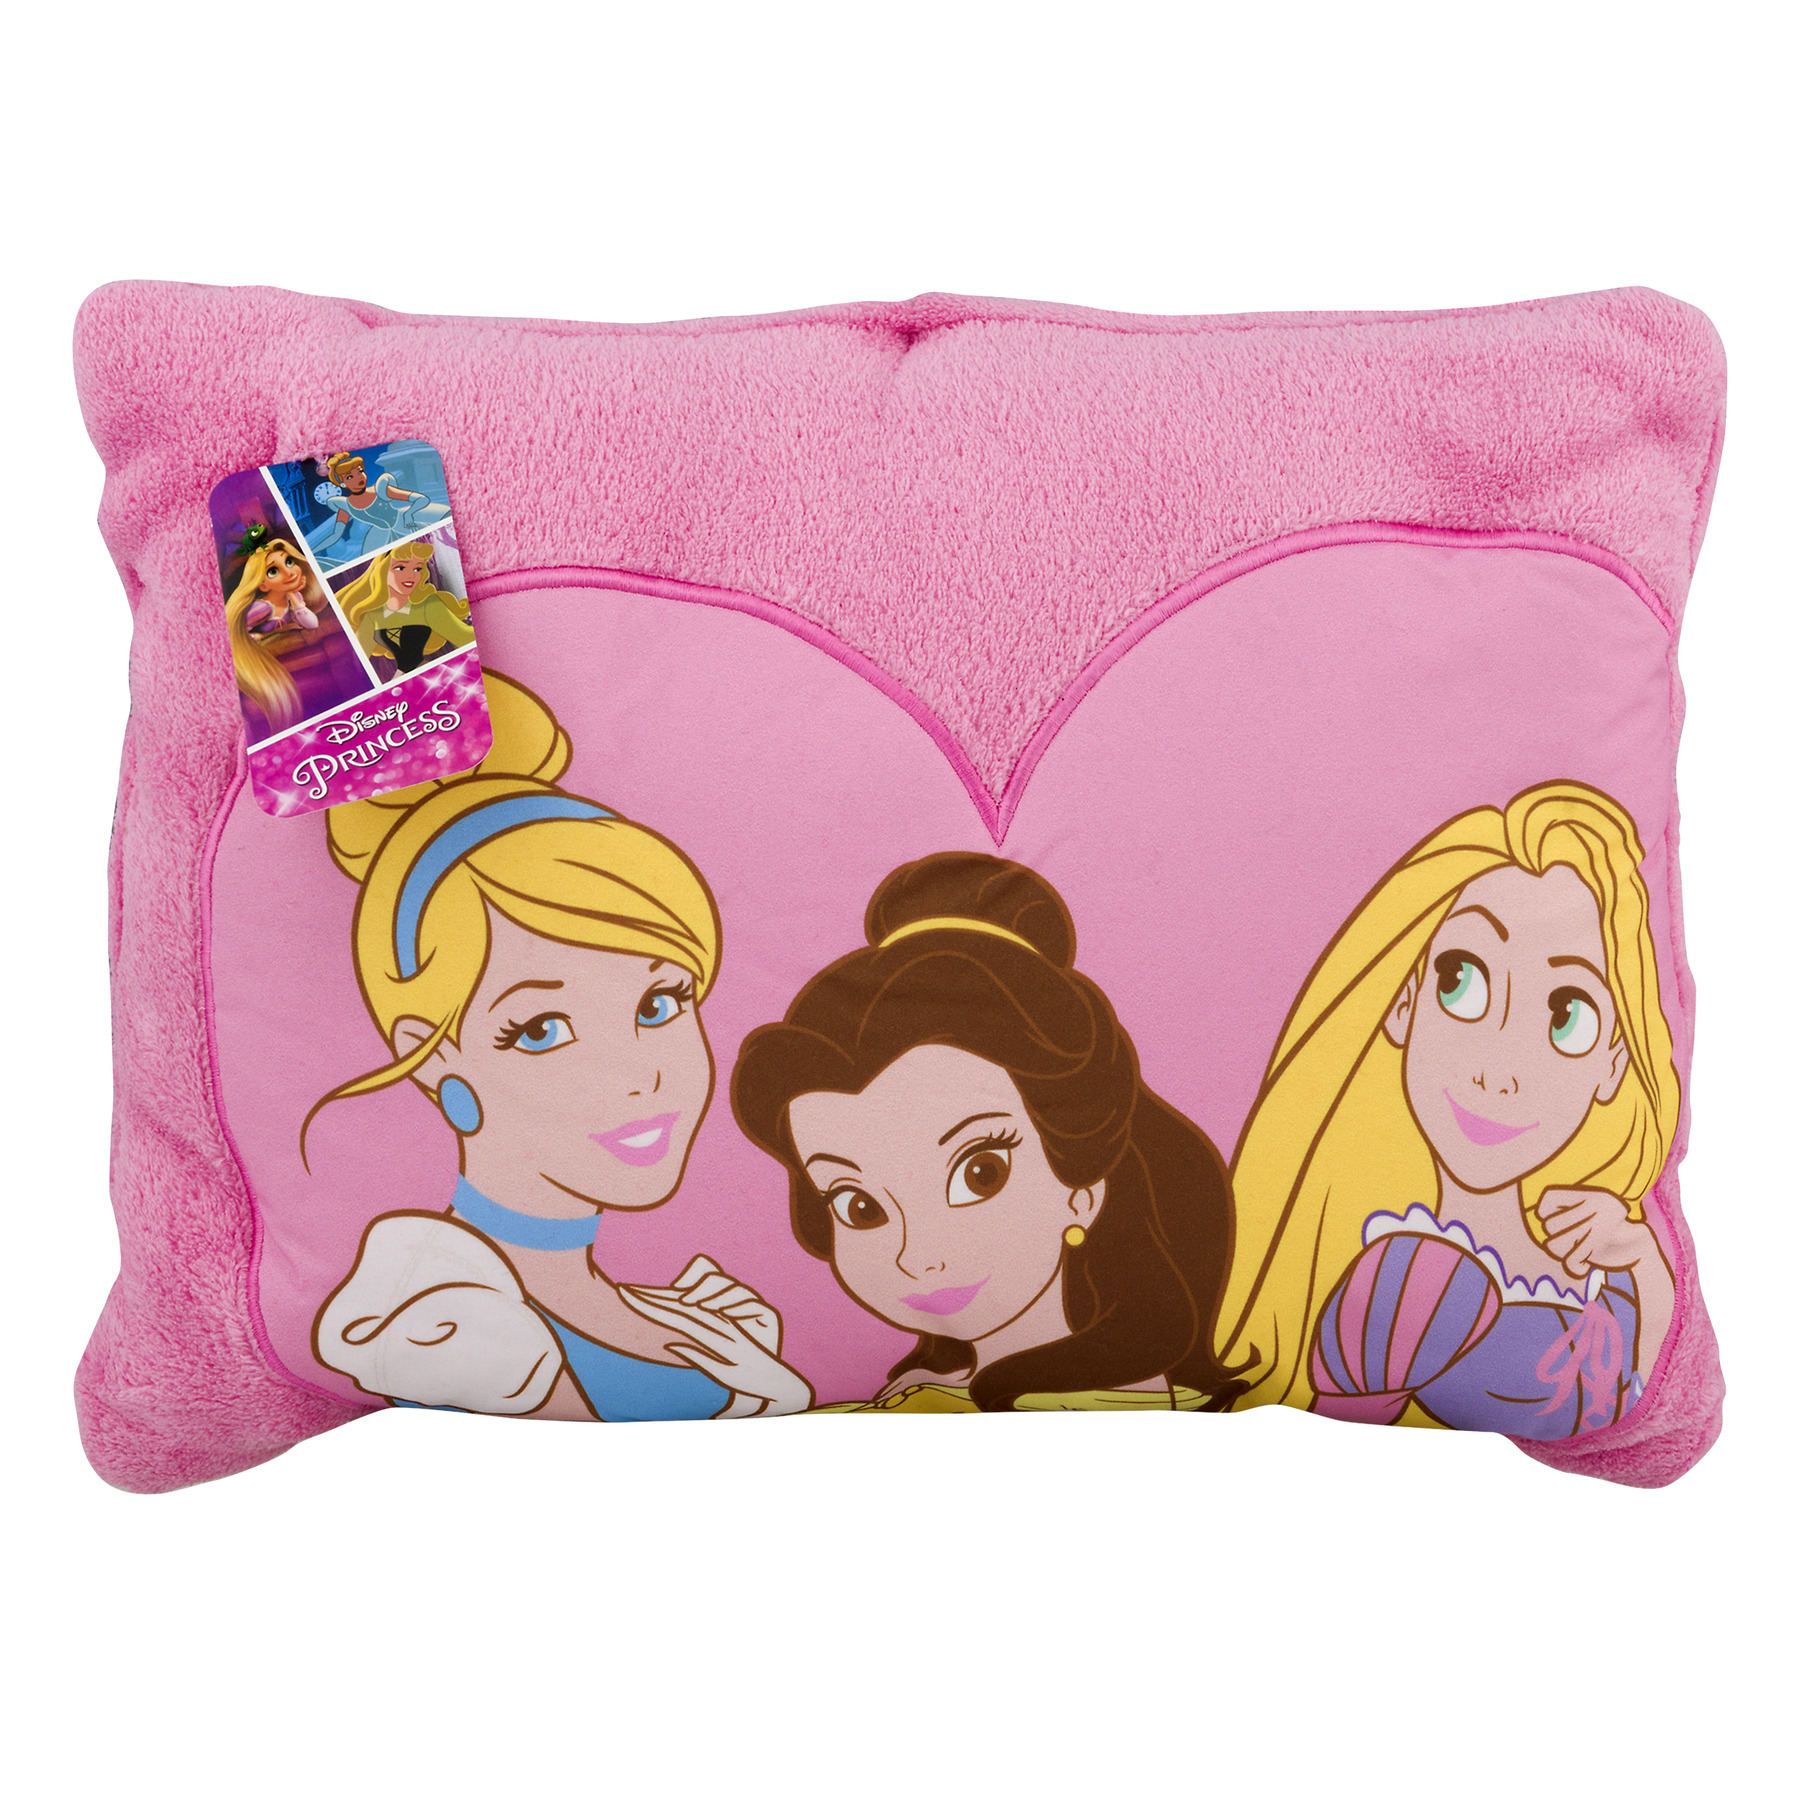 Disney Princess Toddler Pillow, 1.0 CT